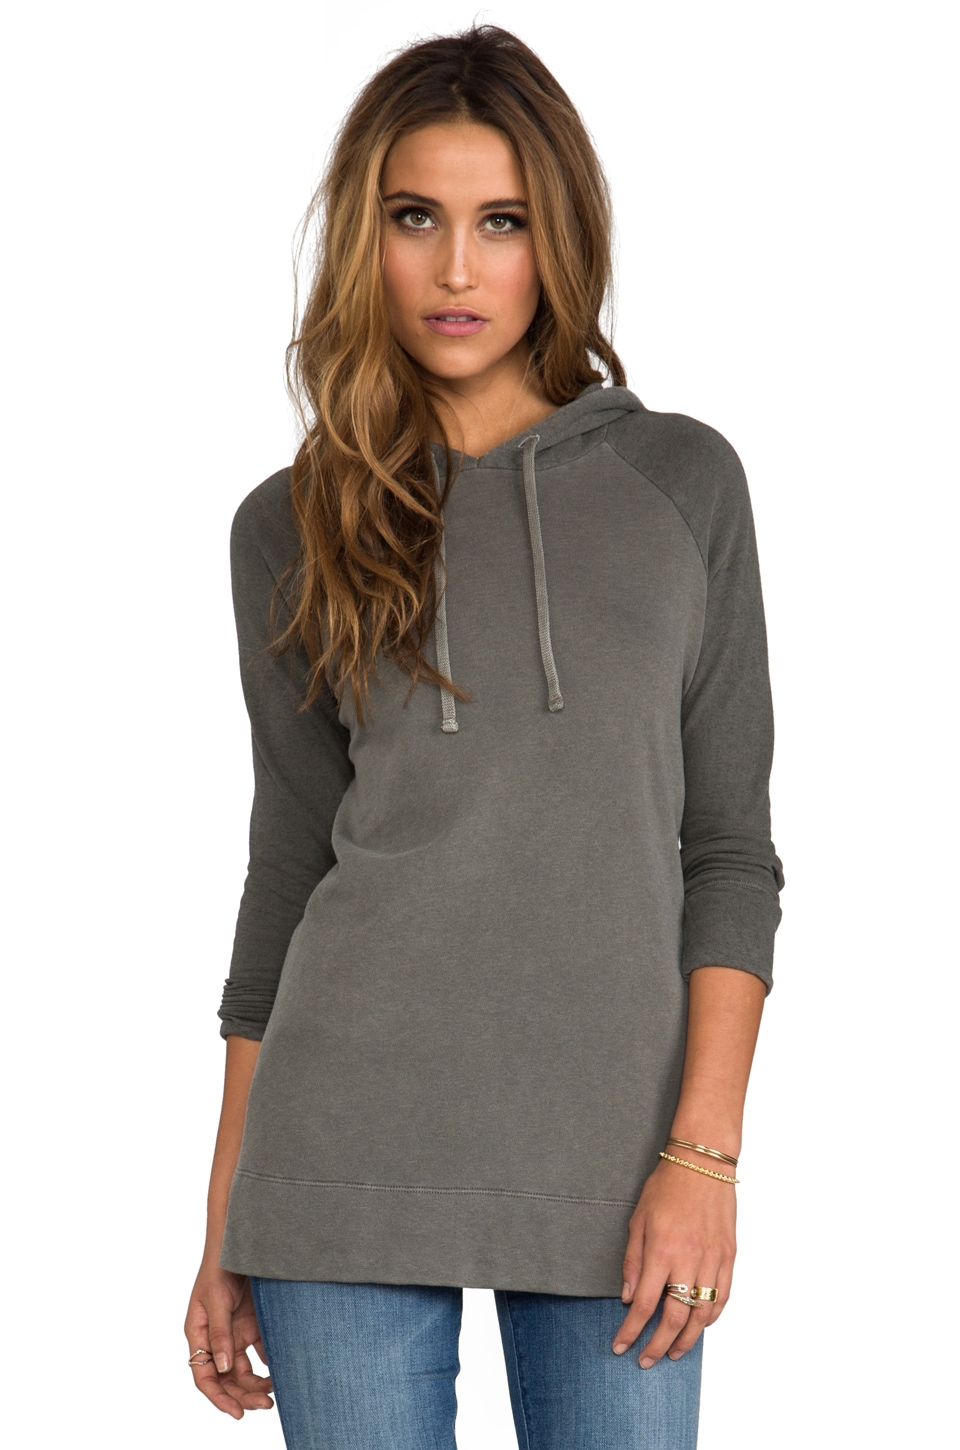 James Perse Colorblocked A Line Hoodie in Spruce